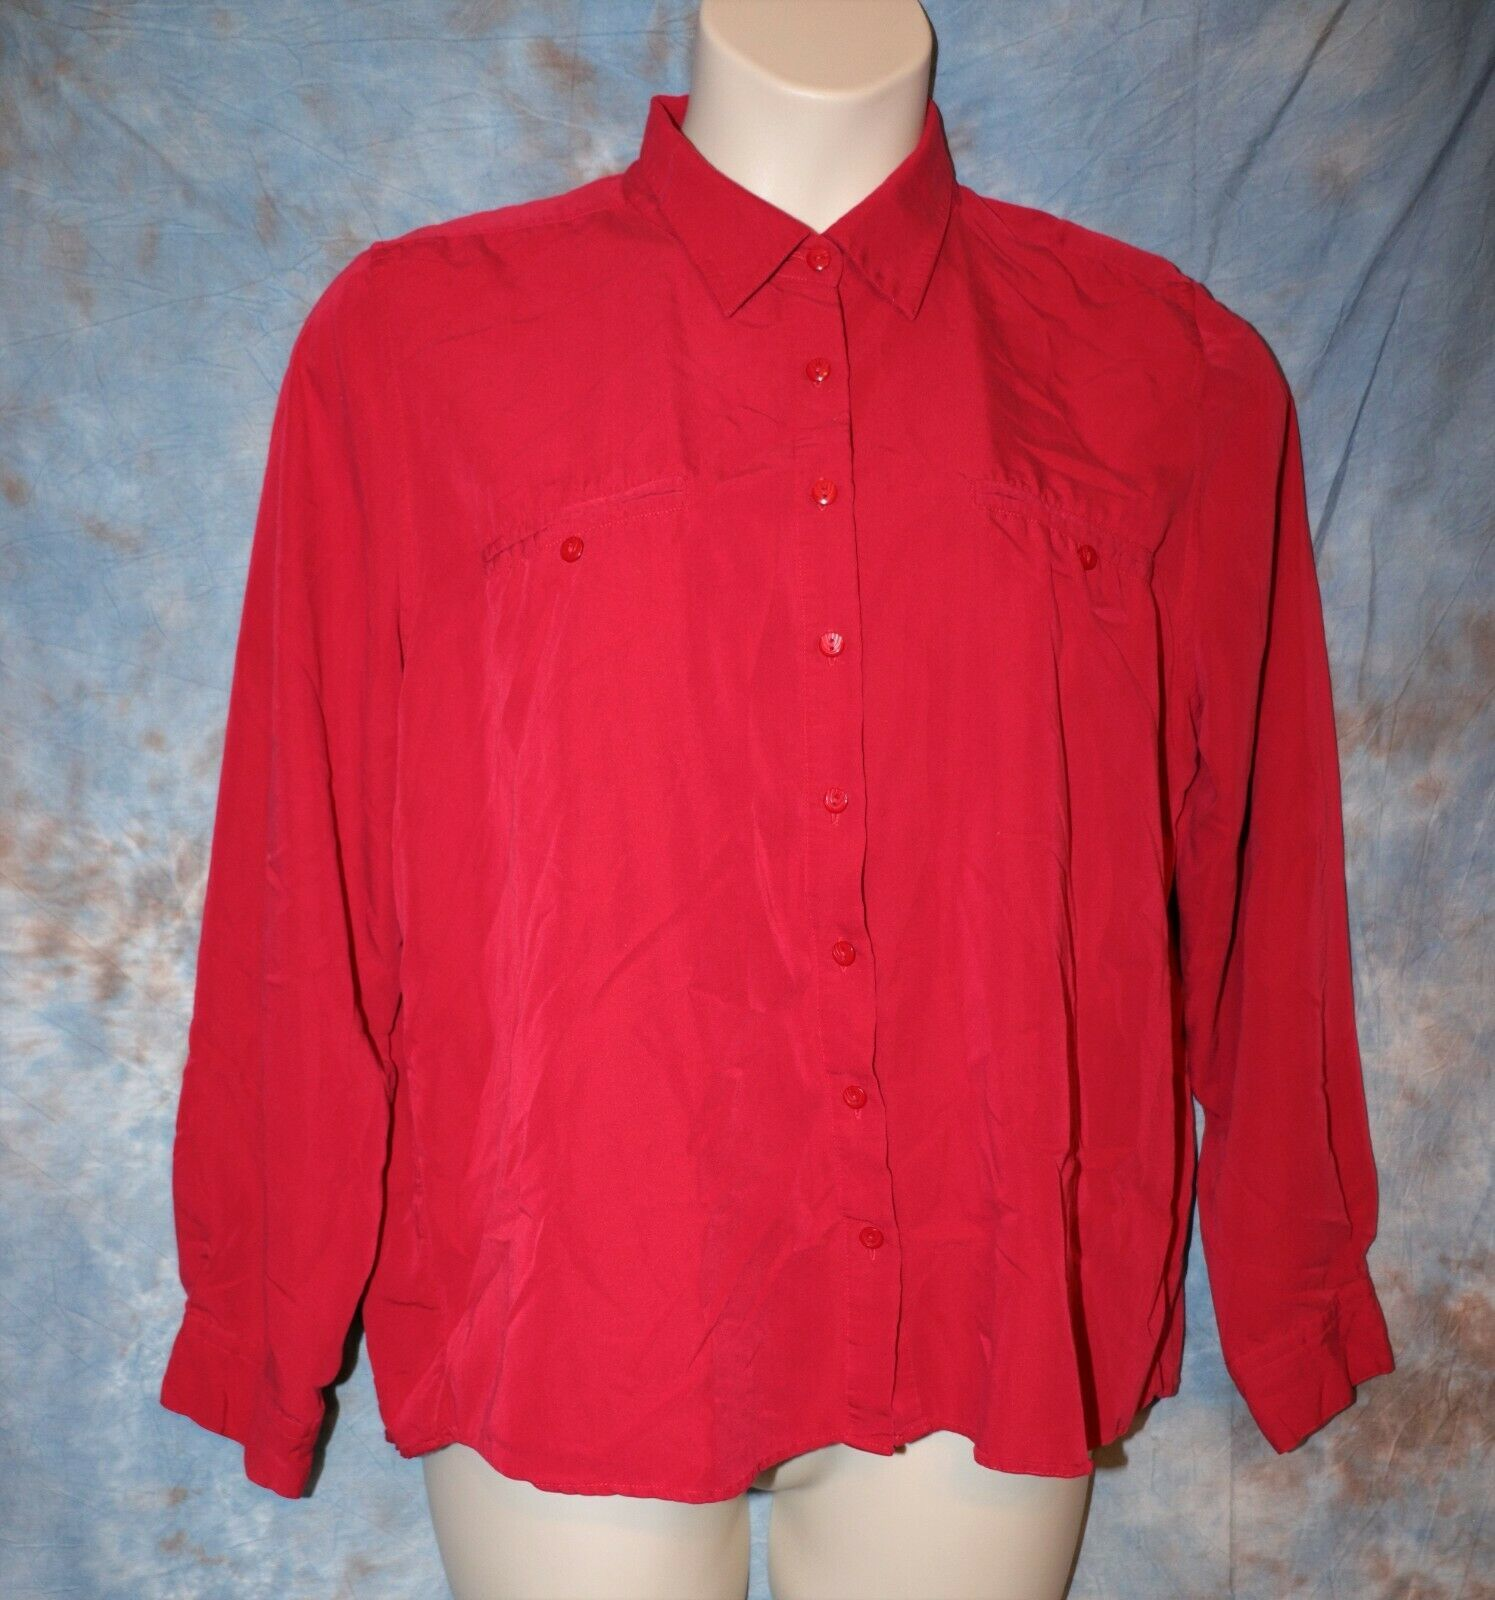 Primary image for Womens Red Christopher & Banks Long Sleeve Shirt Size XL excellent